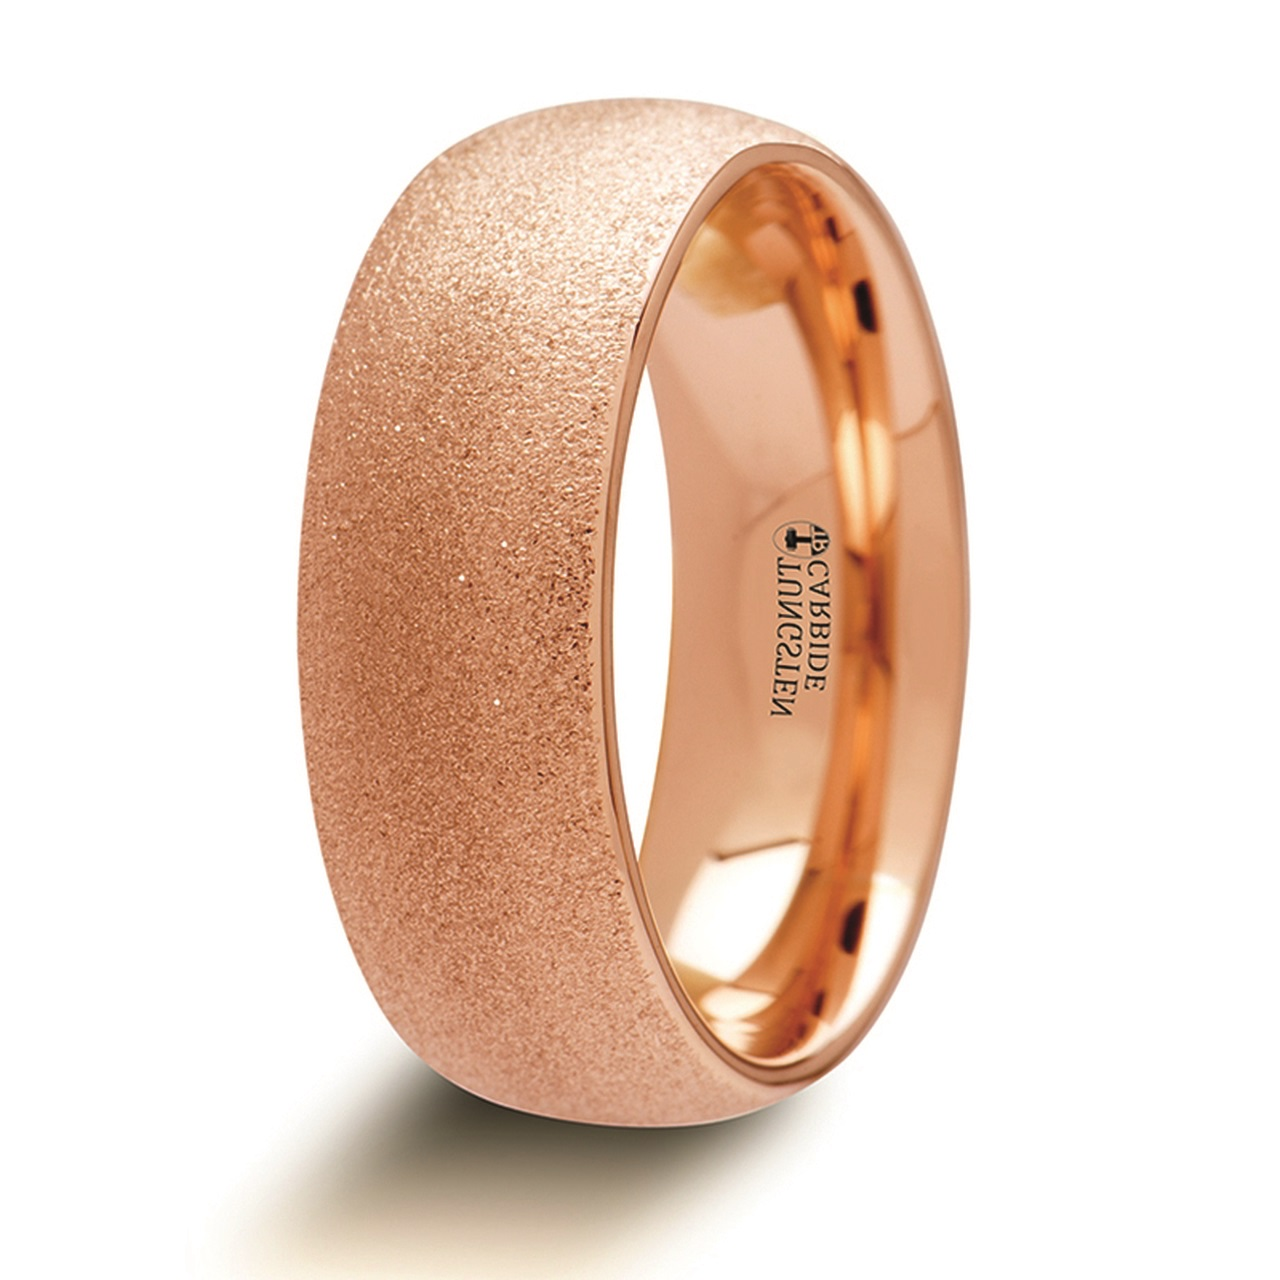 Men's Domed Tungsten Carbide Ring with Rose Gold Plating and Sandblasted Crystalline Finish